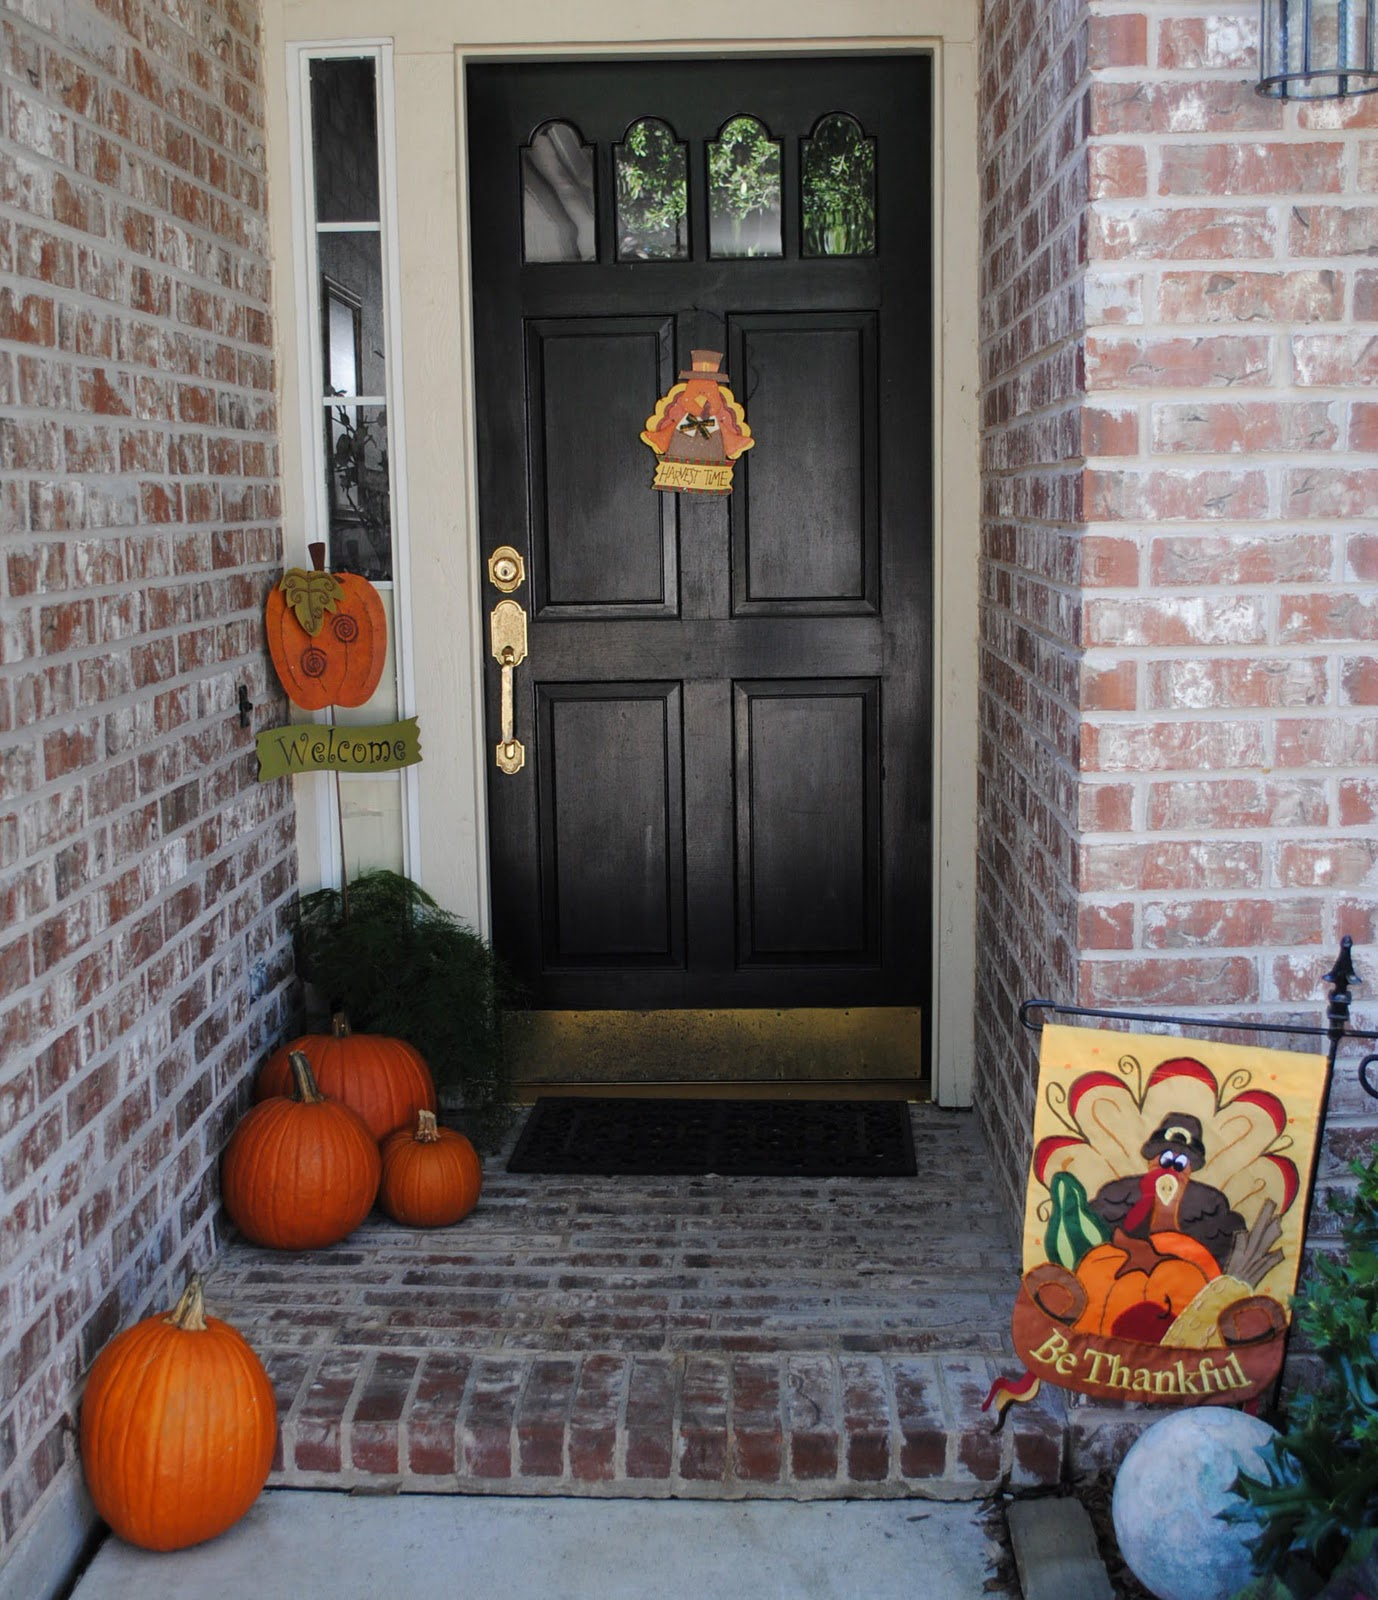 Thanksgiving Decorations And Recipes